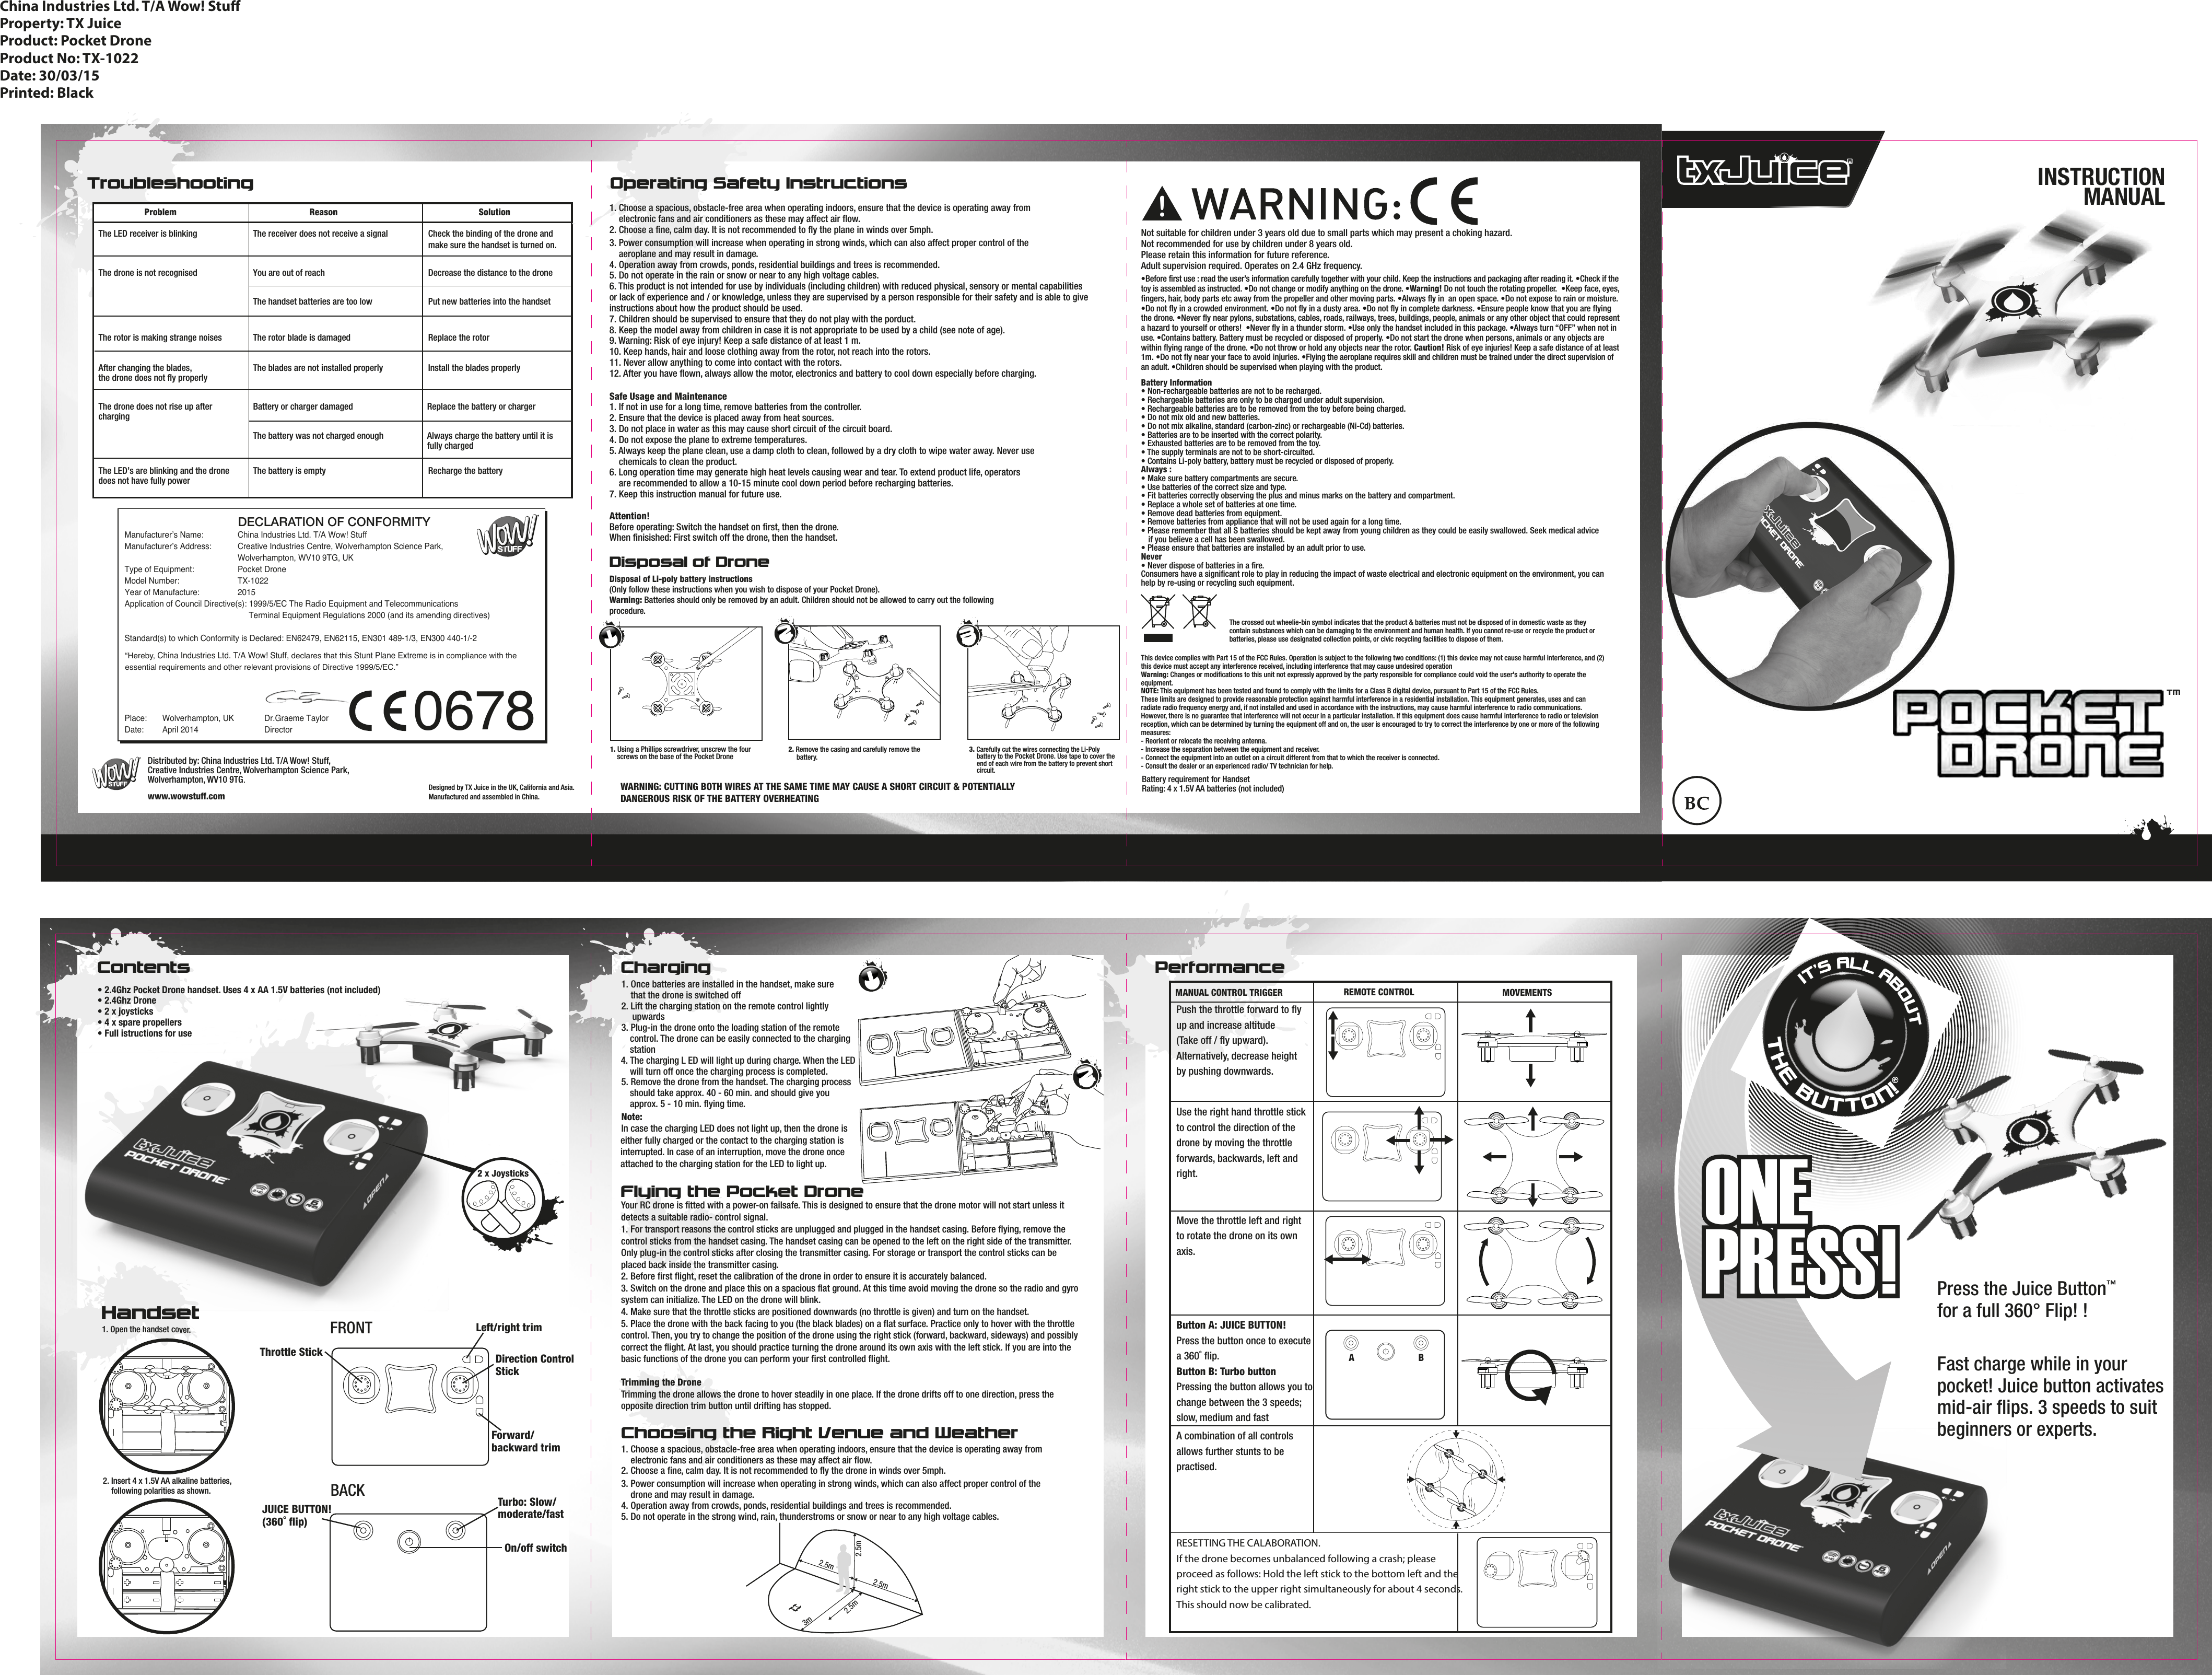 Pin On Drone Manual Guide